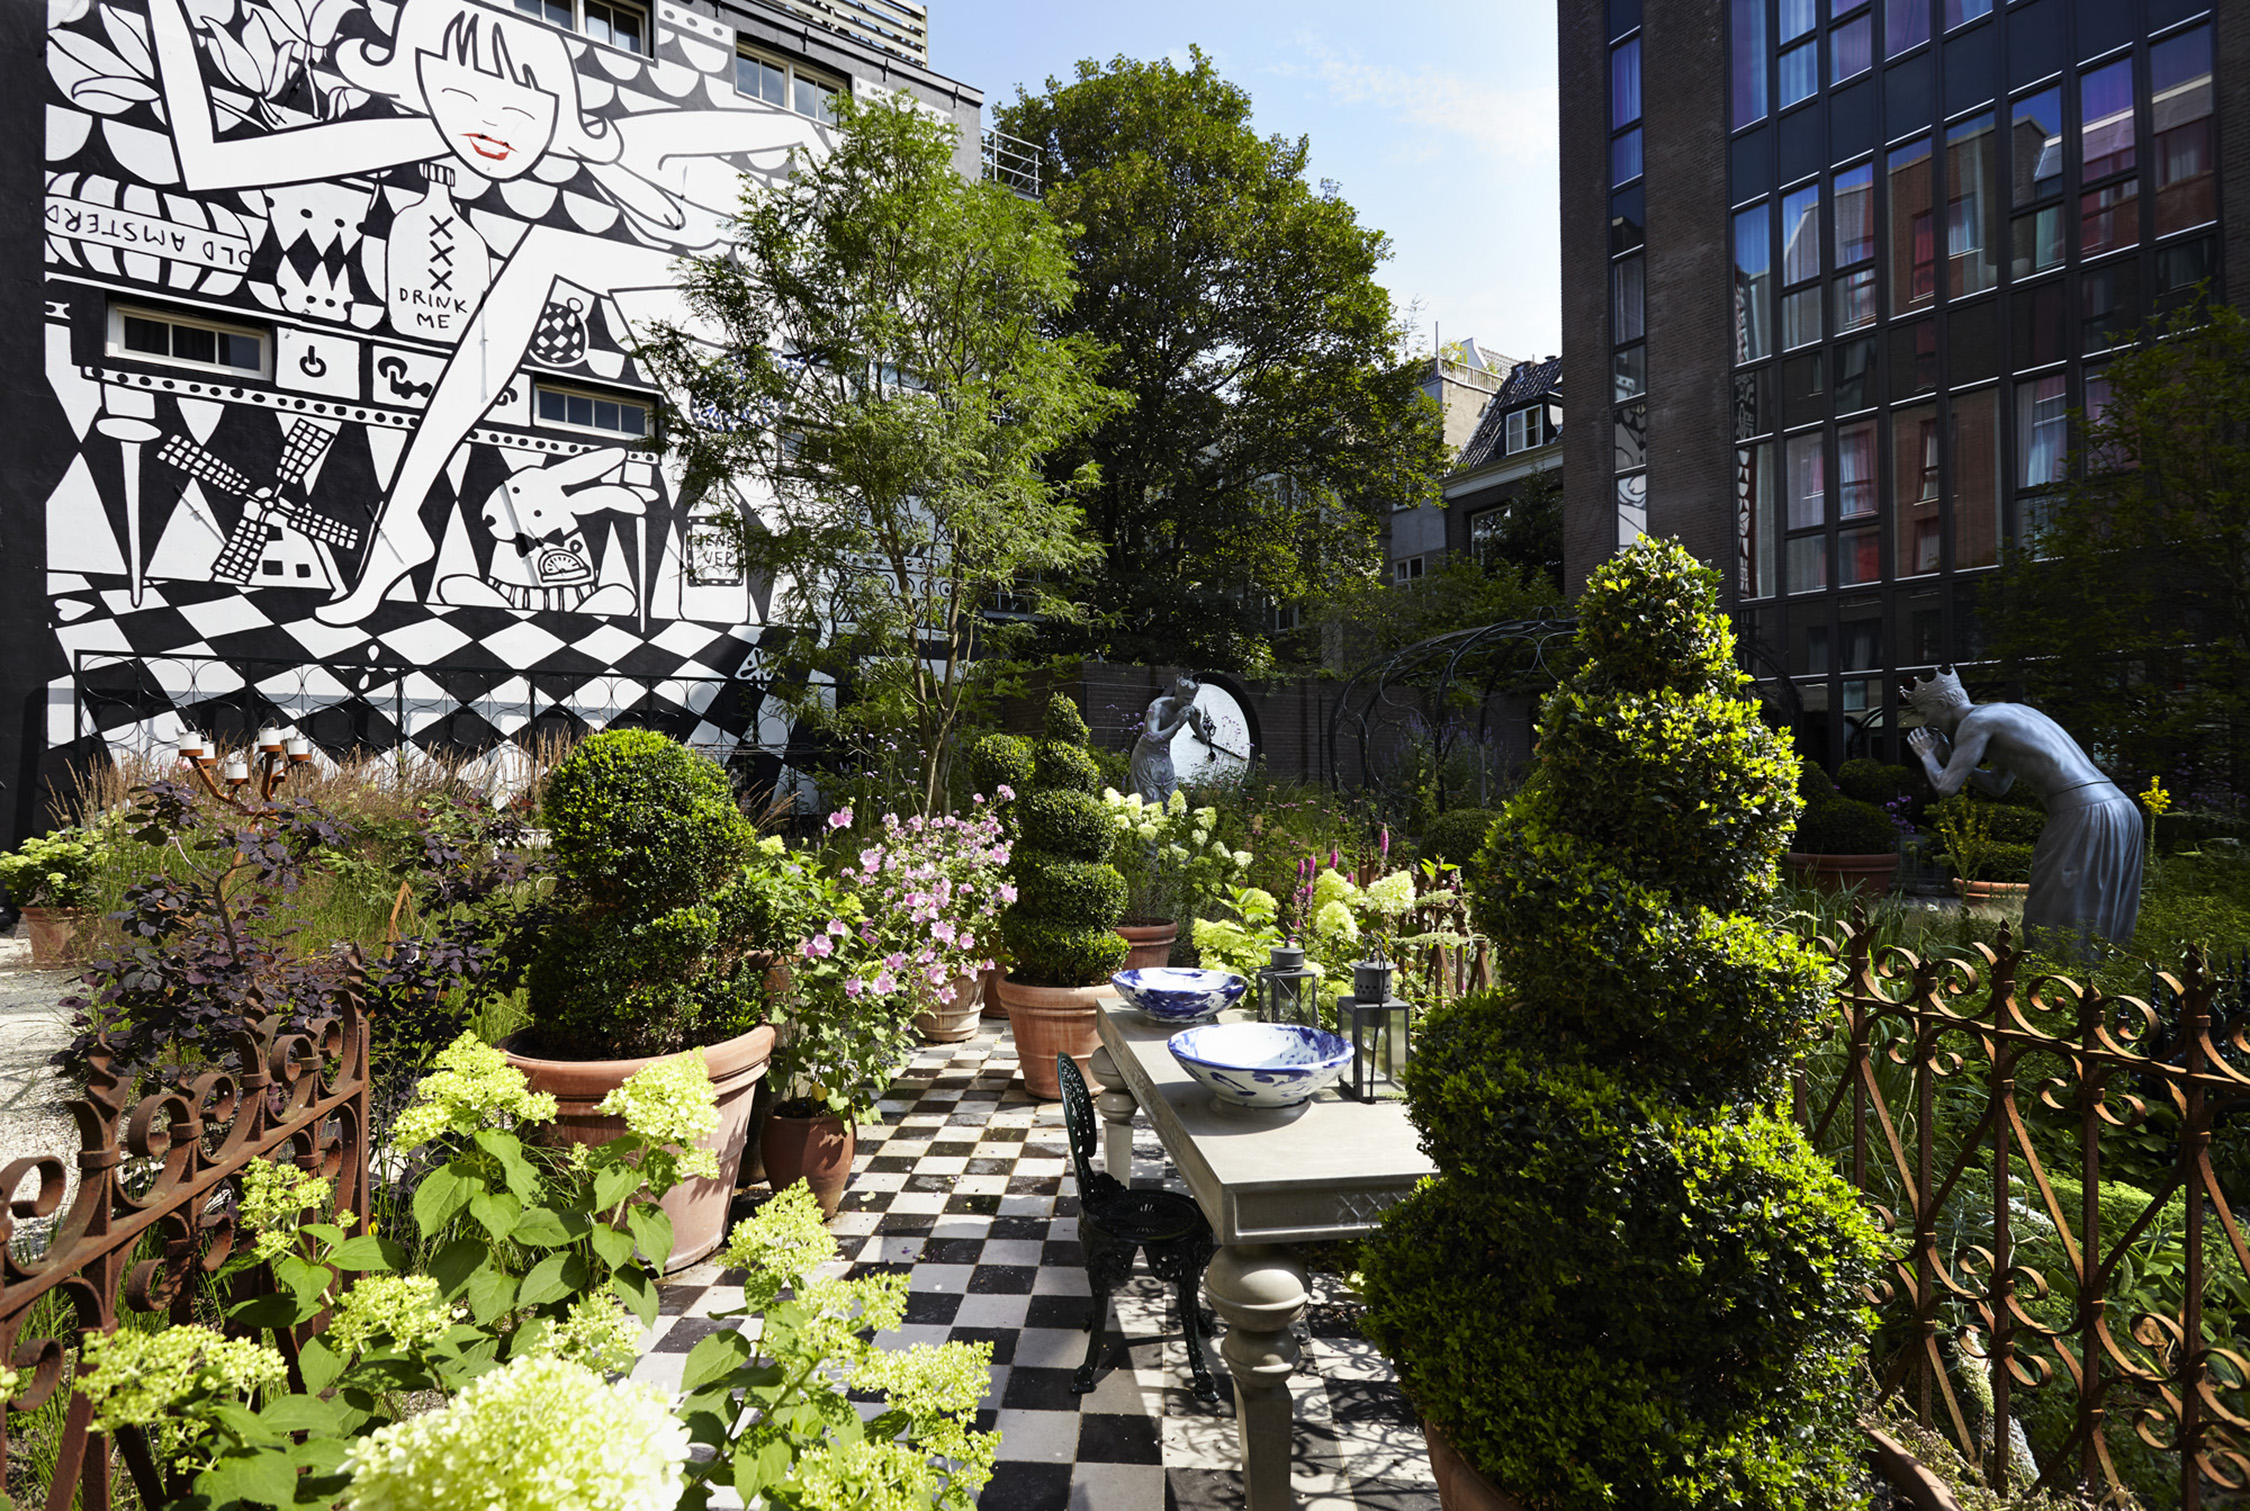 The-Andaz-Amsterdam-Prinsengracht's-Alice-in-Wonderland-inspired-garden-venice-nila-do-simon